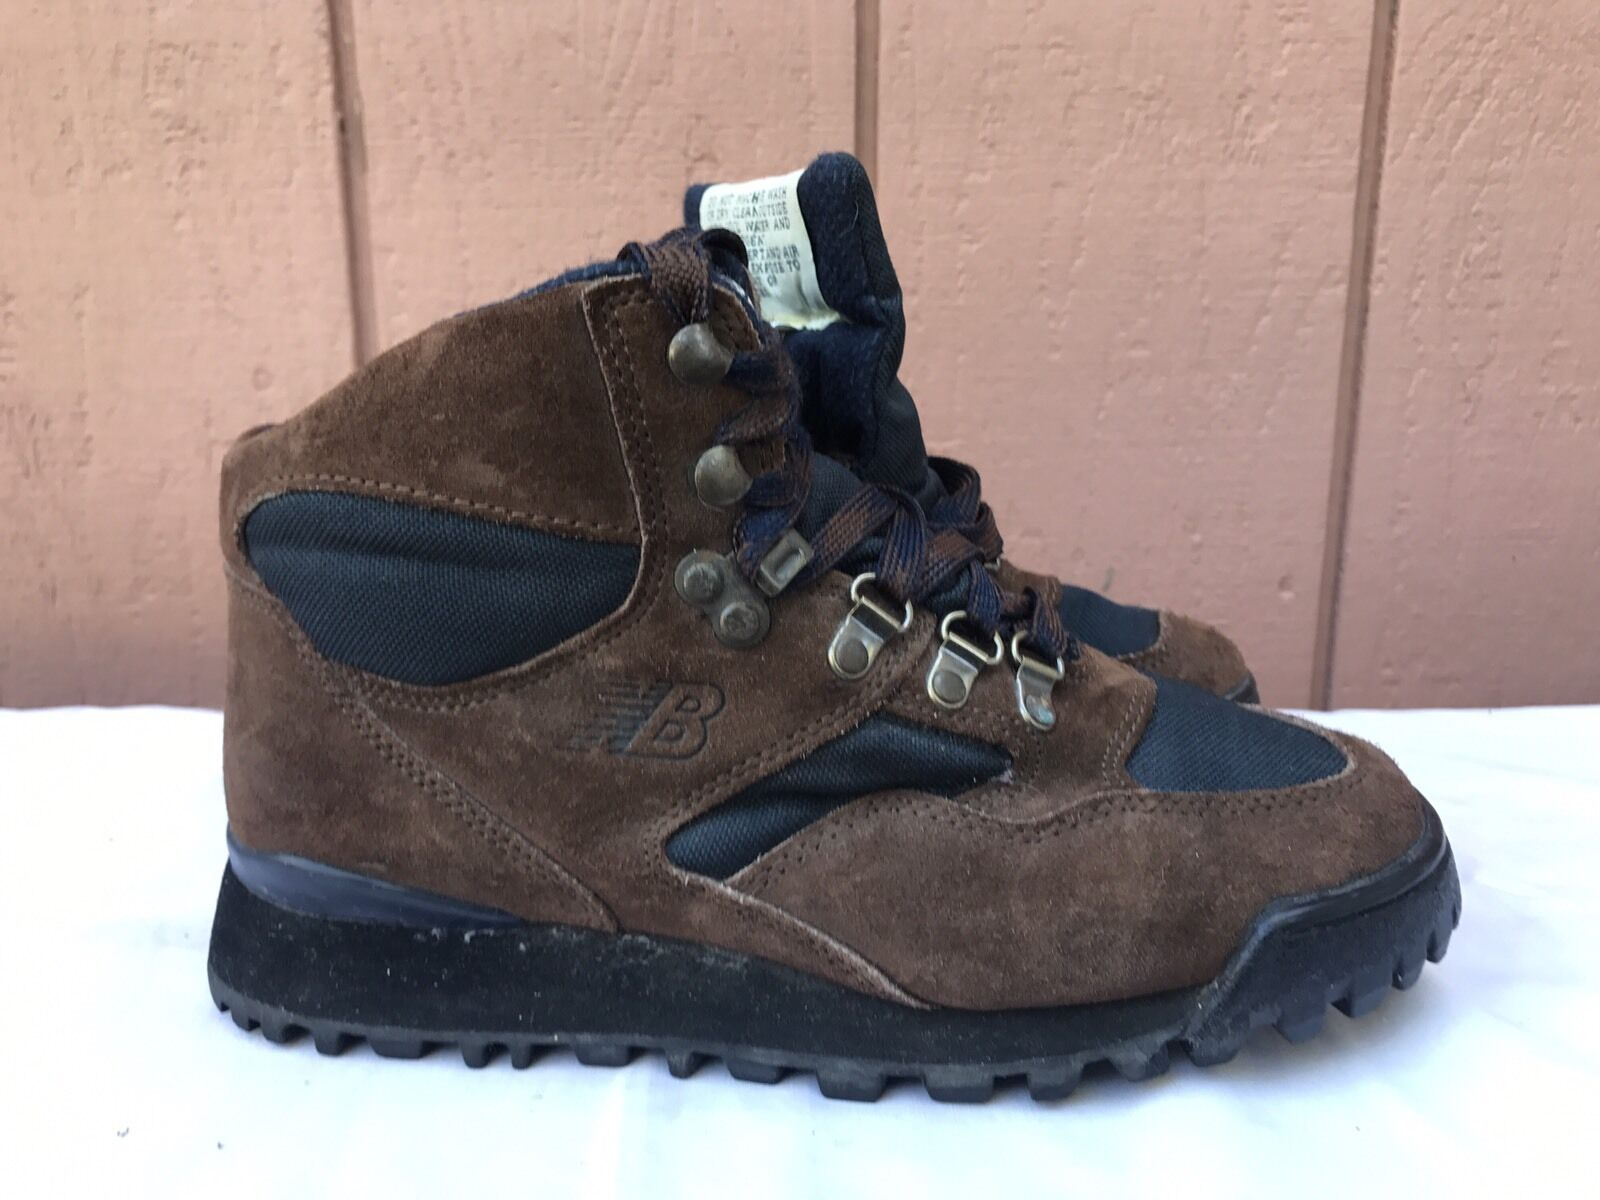 EUC VINTAGE WOMENS NEW BALANCE H415 BROWN SUEDE HIKING BOOTS SIZE US 7